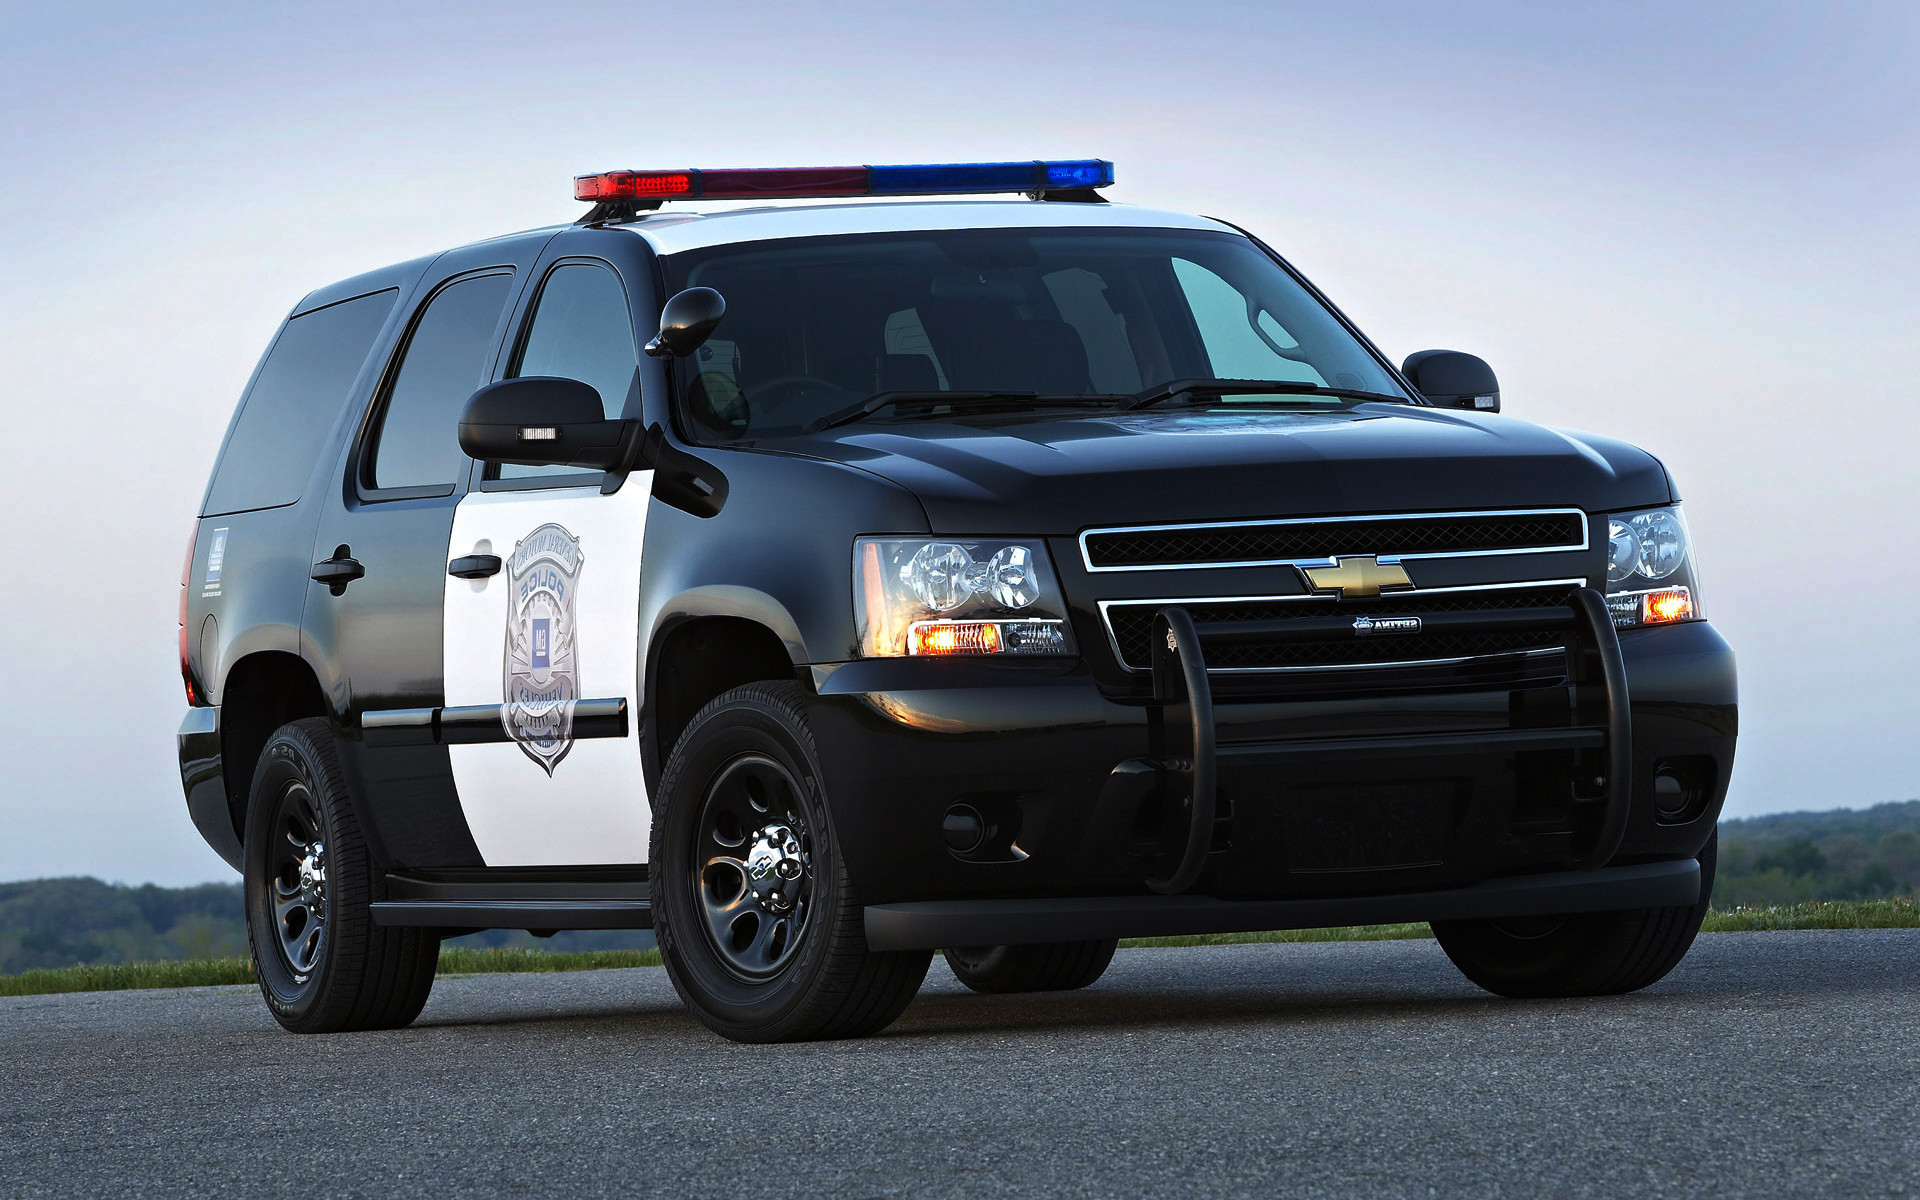 Police Car Hd The Best Of Web S And More P Ography Blog 1038327 Wallpaper  wallpaper